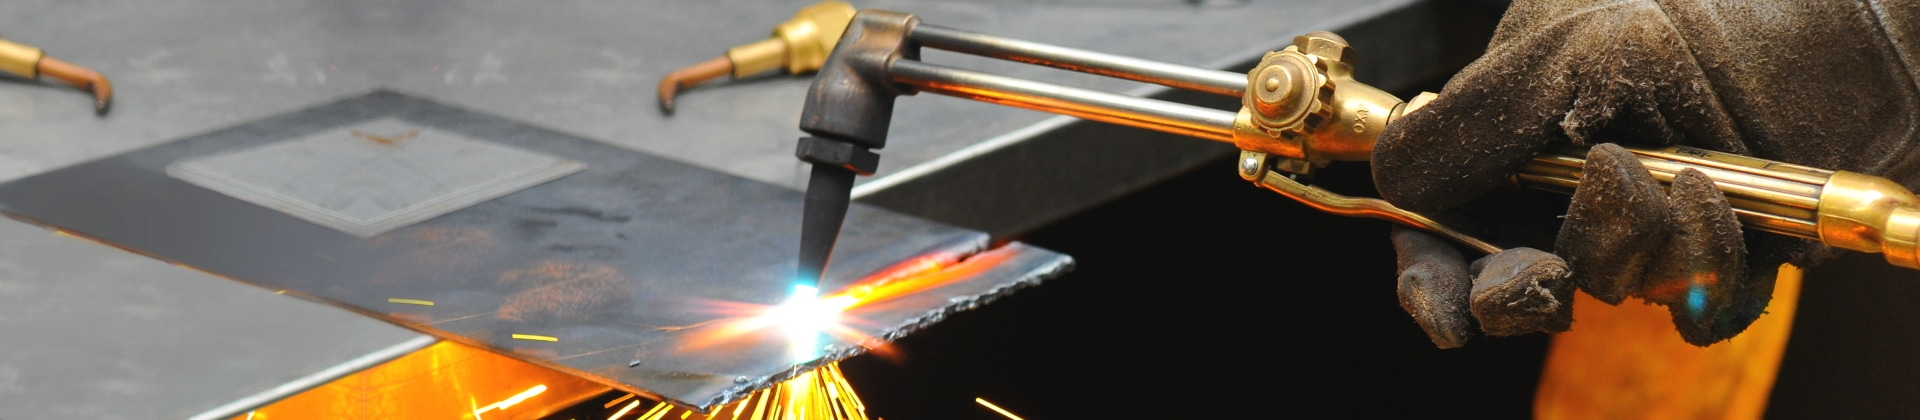 Best Plasma Cutters under $1000